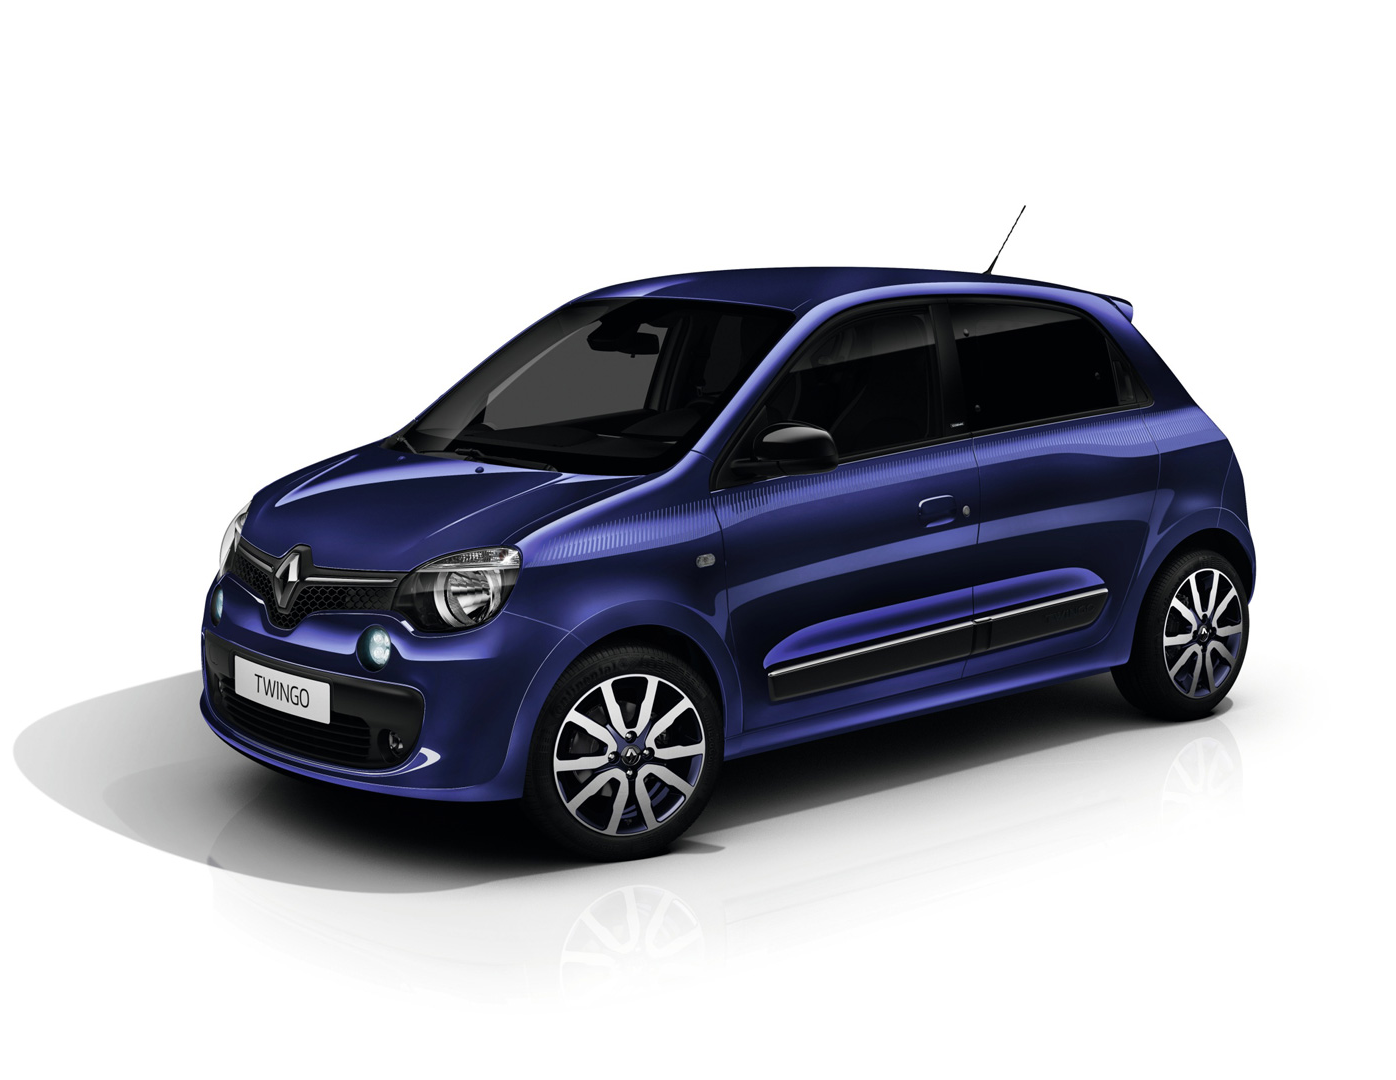 renault twingo iii 2016 couleurs colors. Black Bedroom Furniture Sets. Home Design Ideas